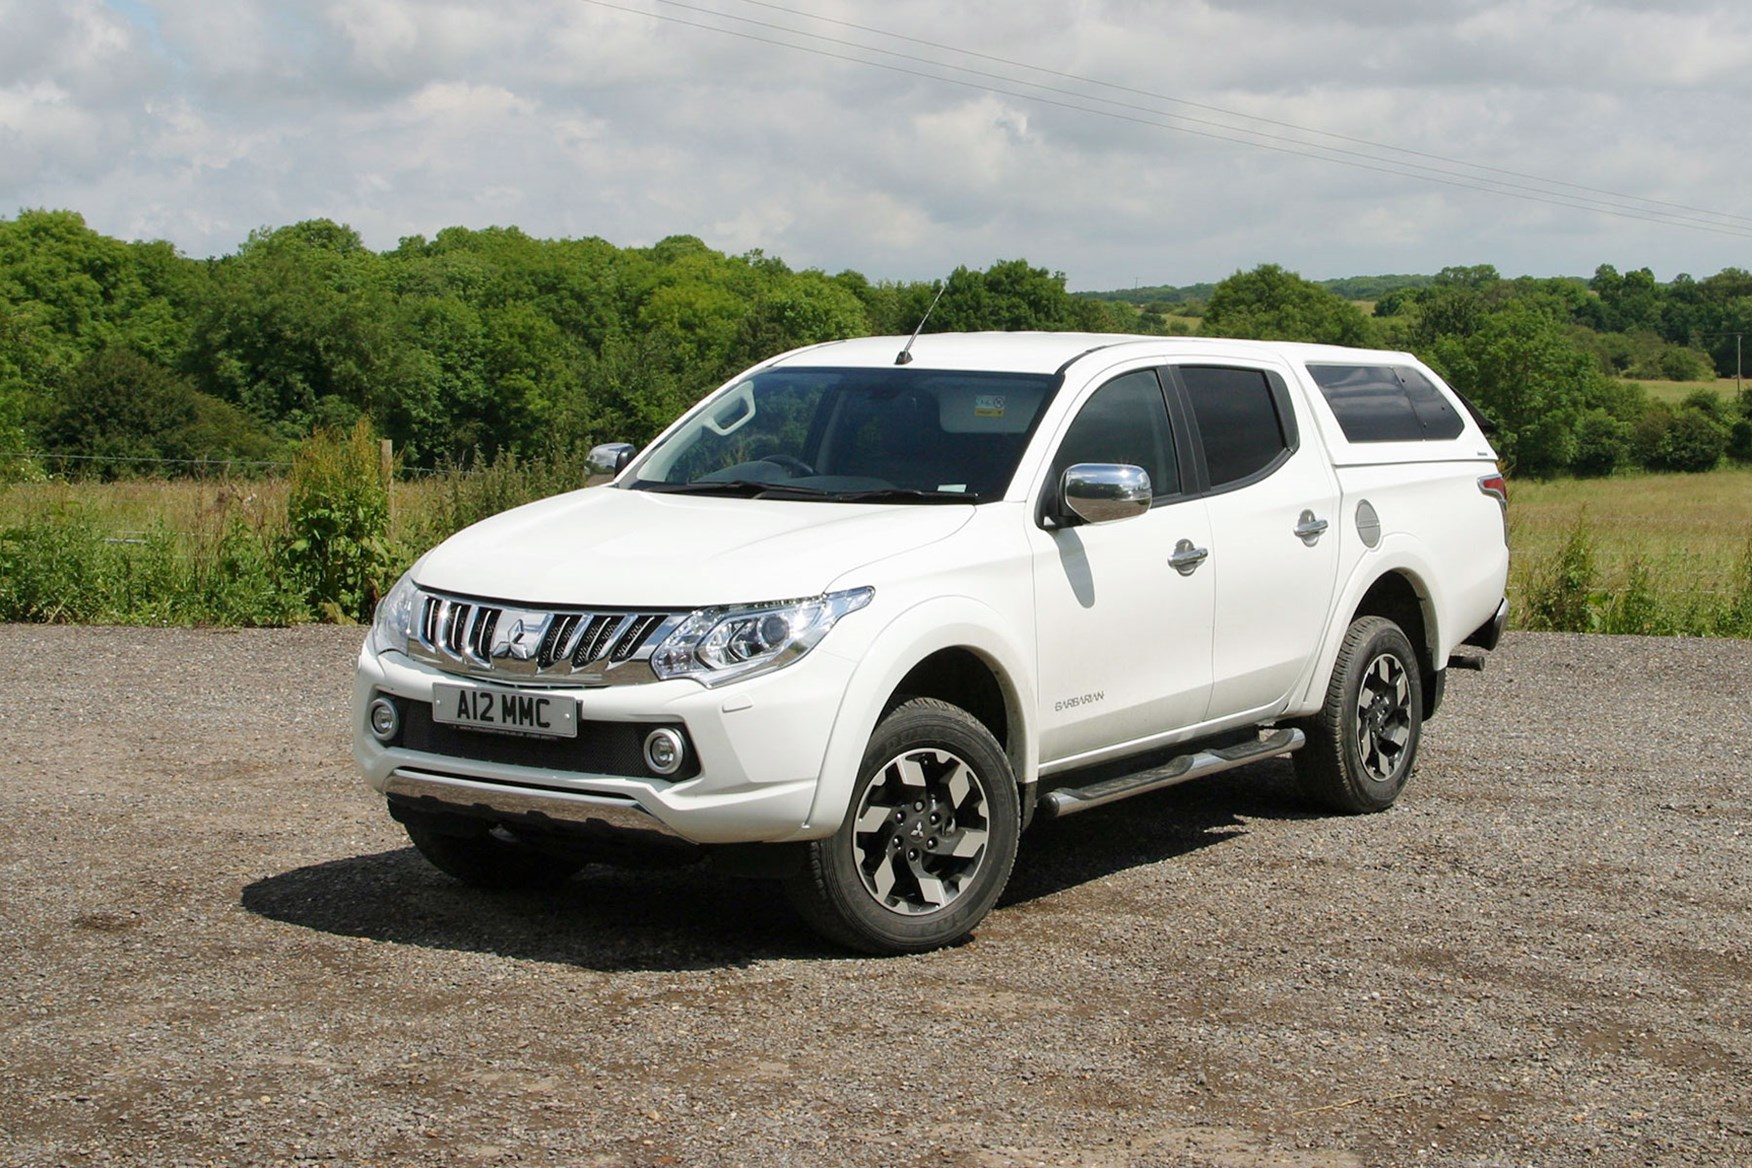 hight resolution of mitsubishi l200 review white front view with hardtop